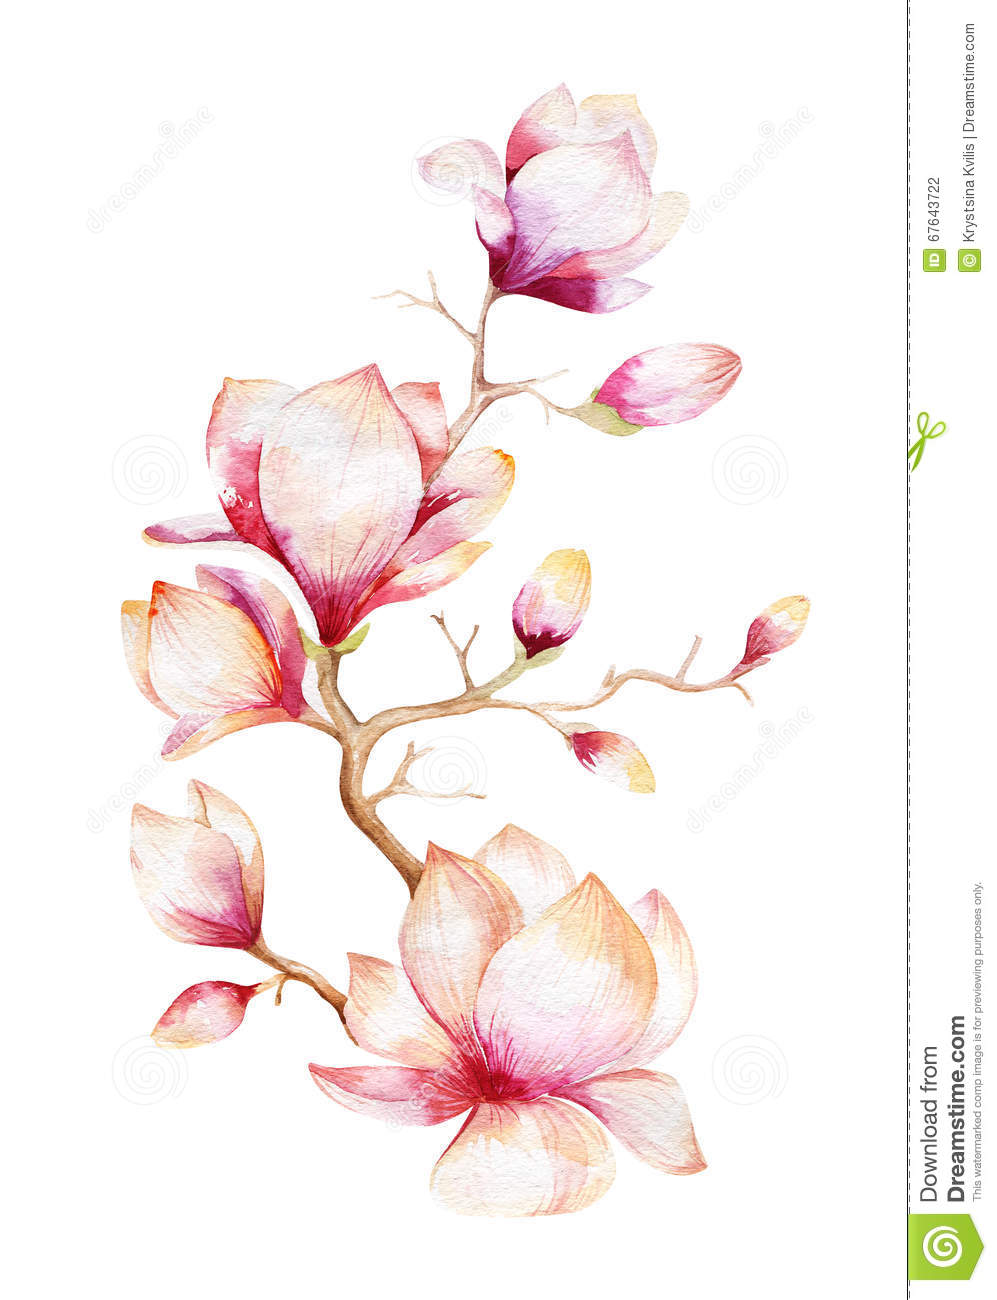 Painting Magnolia Flower Wallpaper Hand Drawn Watercolor Floral